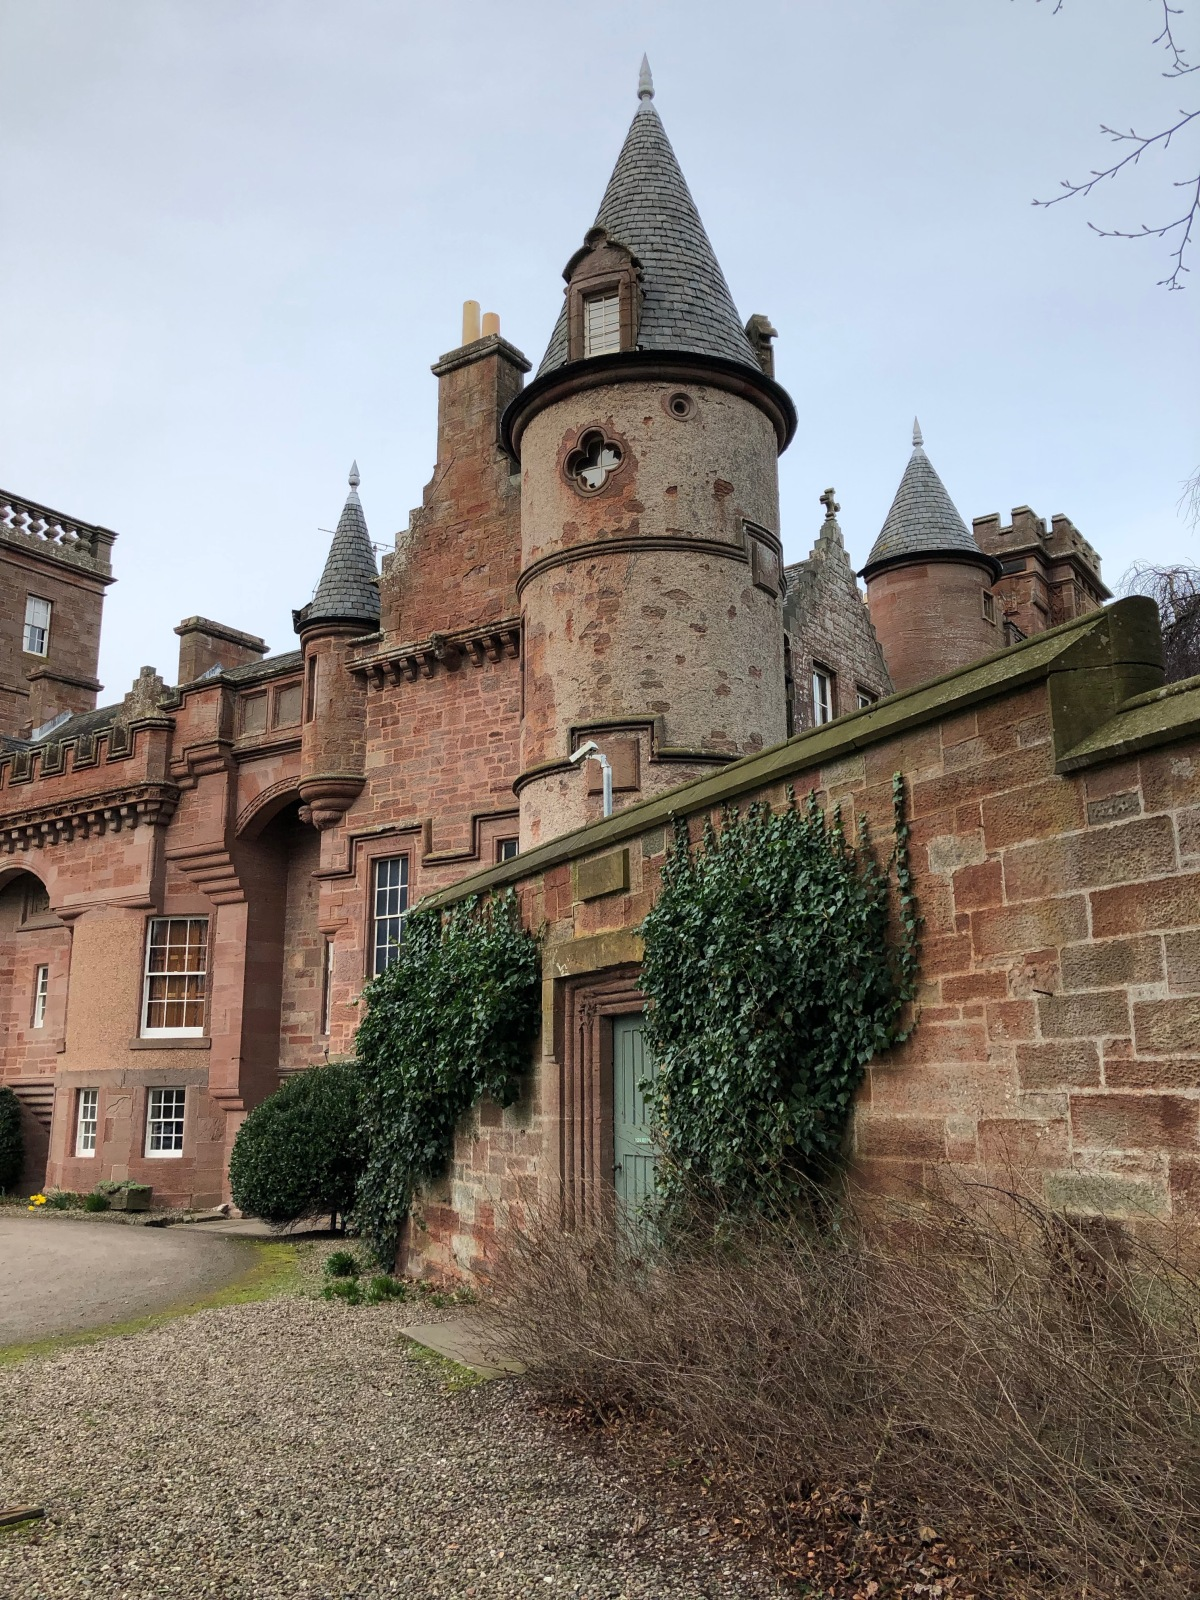 Arrived at Arbroath and Hospitalfield House